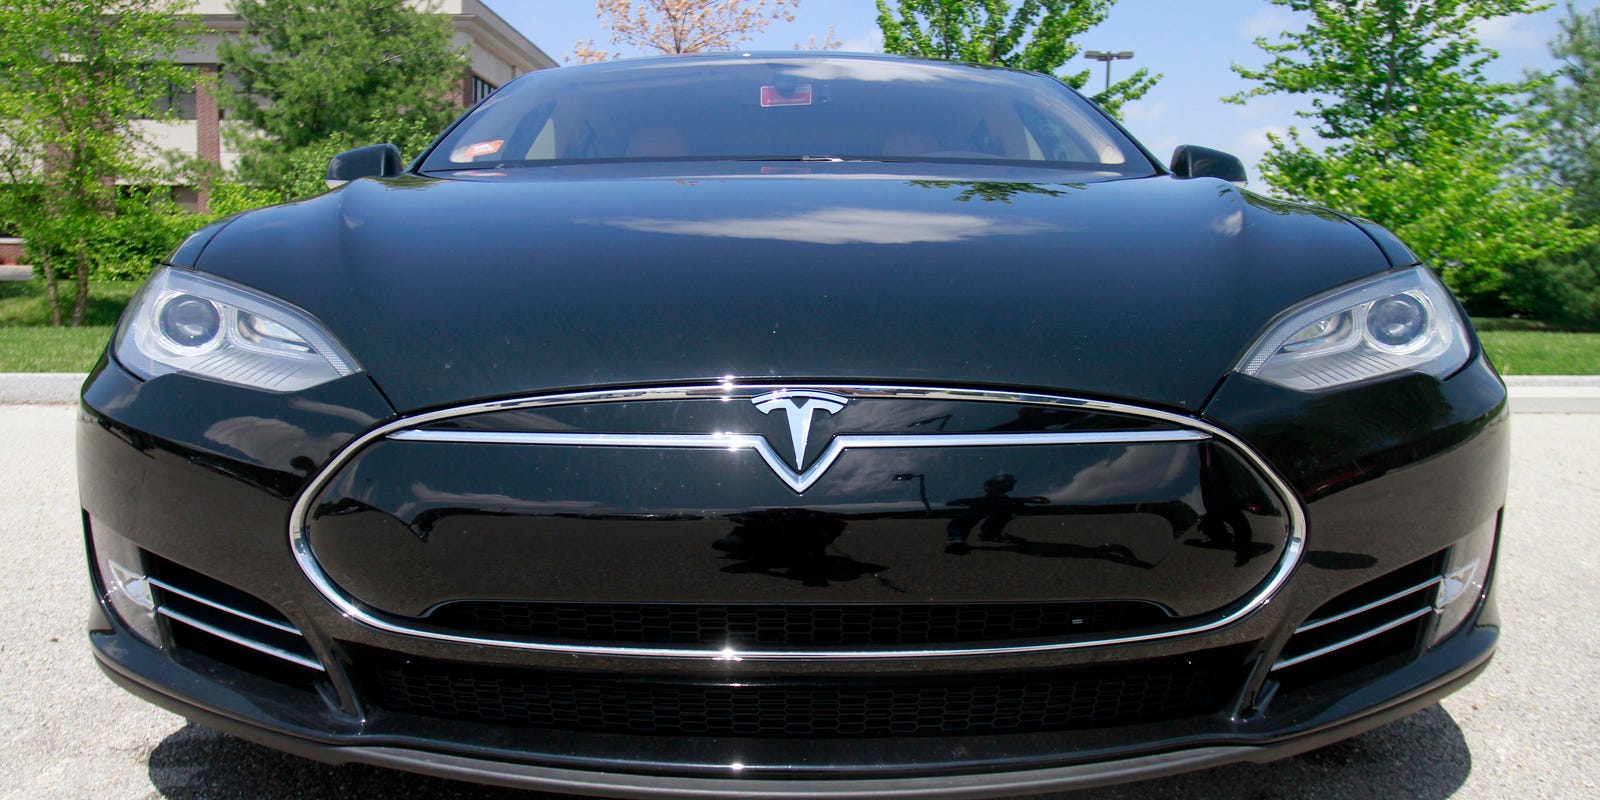 complaints flare at bill that would affect tesla sales springfield news leader